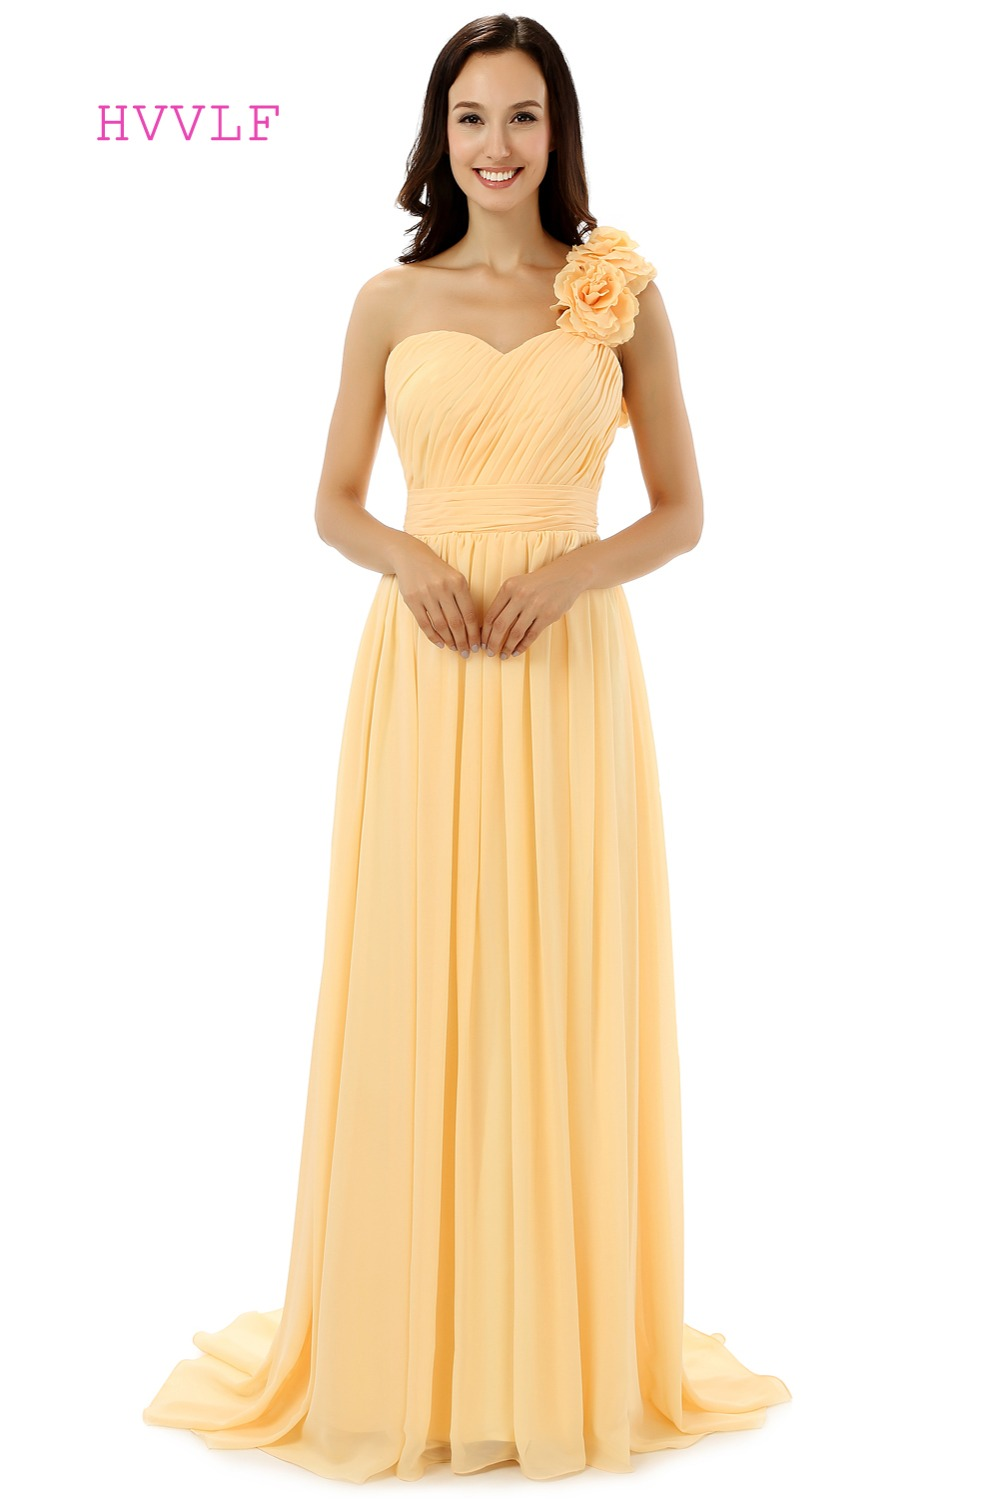 Online buy wholesale bridesmaid dresses under 50 from china hvvlf 2017 cheap bridesmaid dresses under 50 a line one shoulder floor length yellow ombrellifo Images